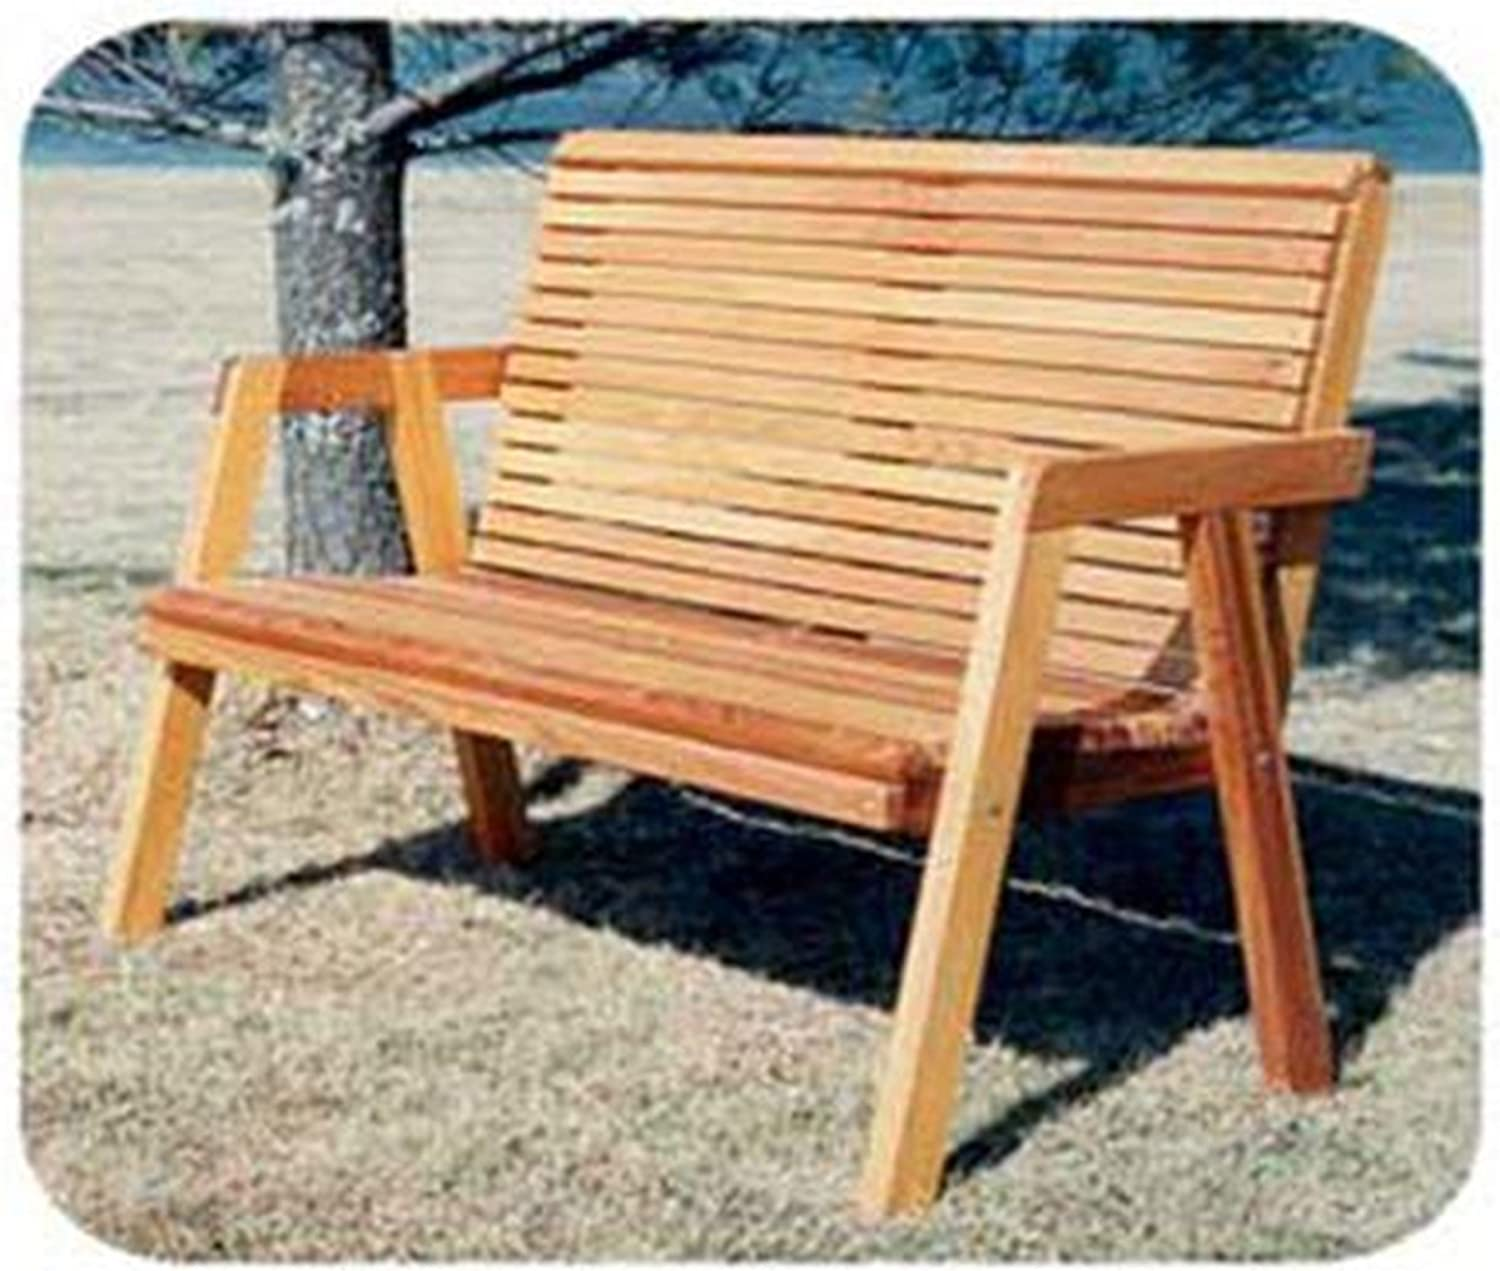 Woodworking Project Paper Plan To Build Simple Patio Bench Outdoor Furniture Woodworking Project Plans Amazon Com